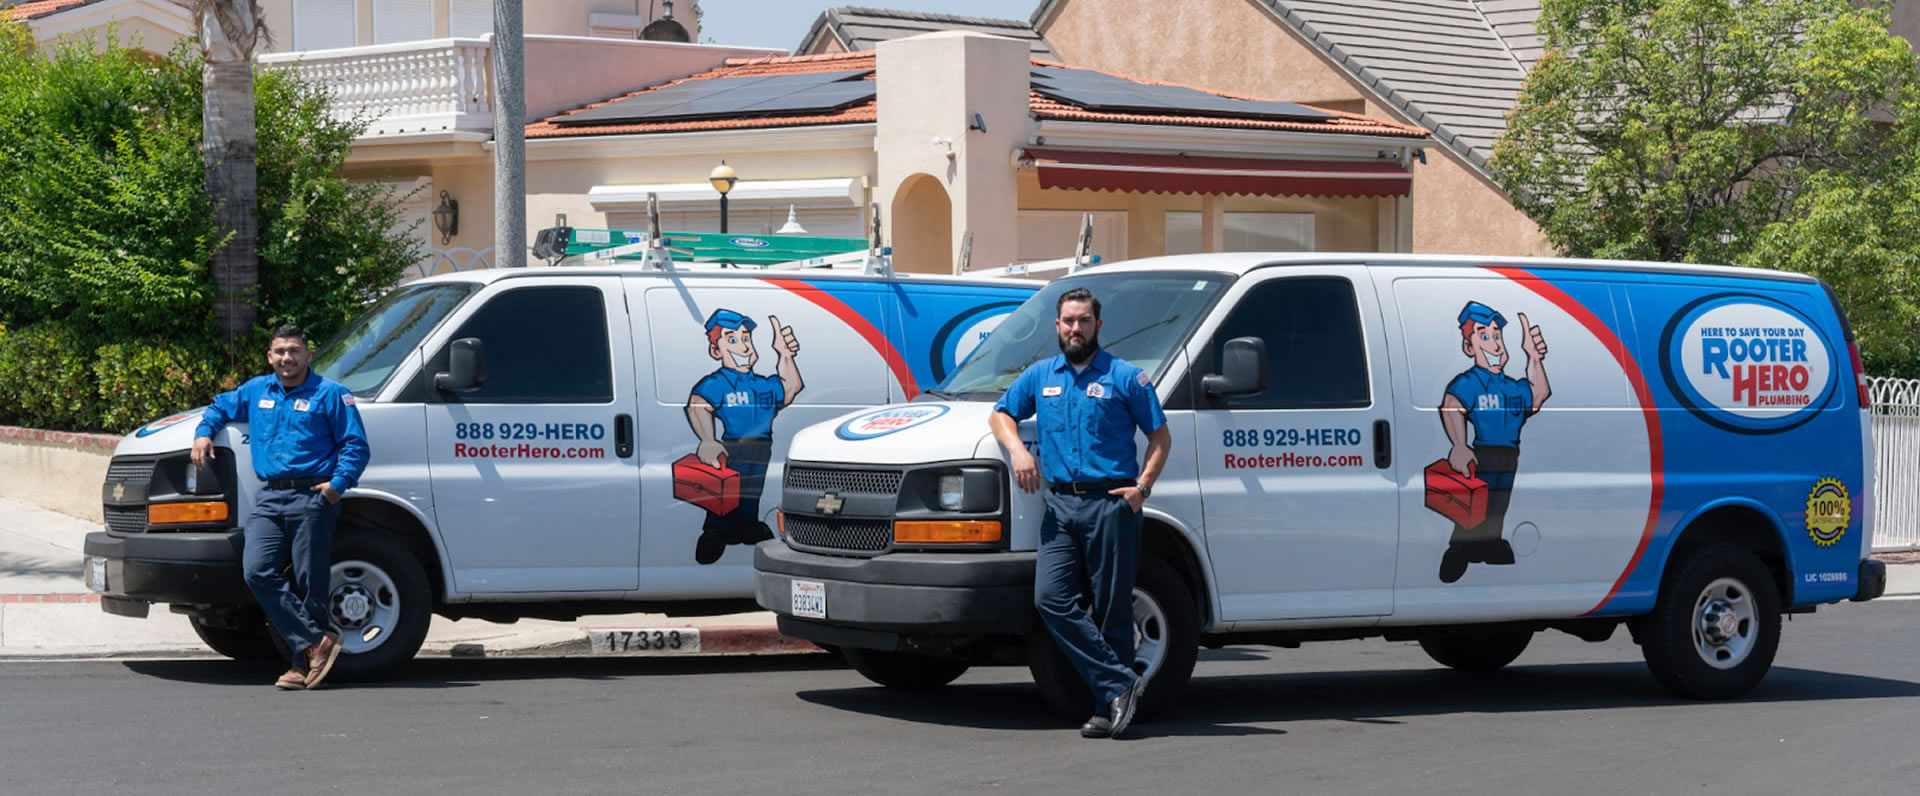 Drain Cleaning in Santa Barbara